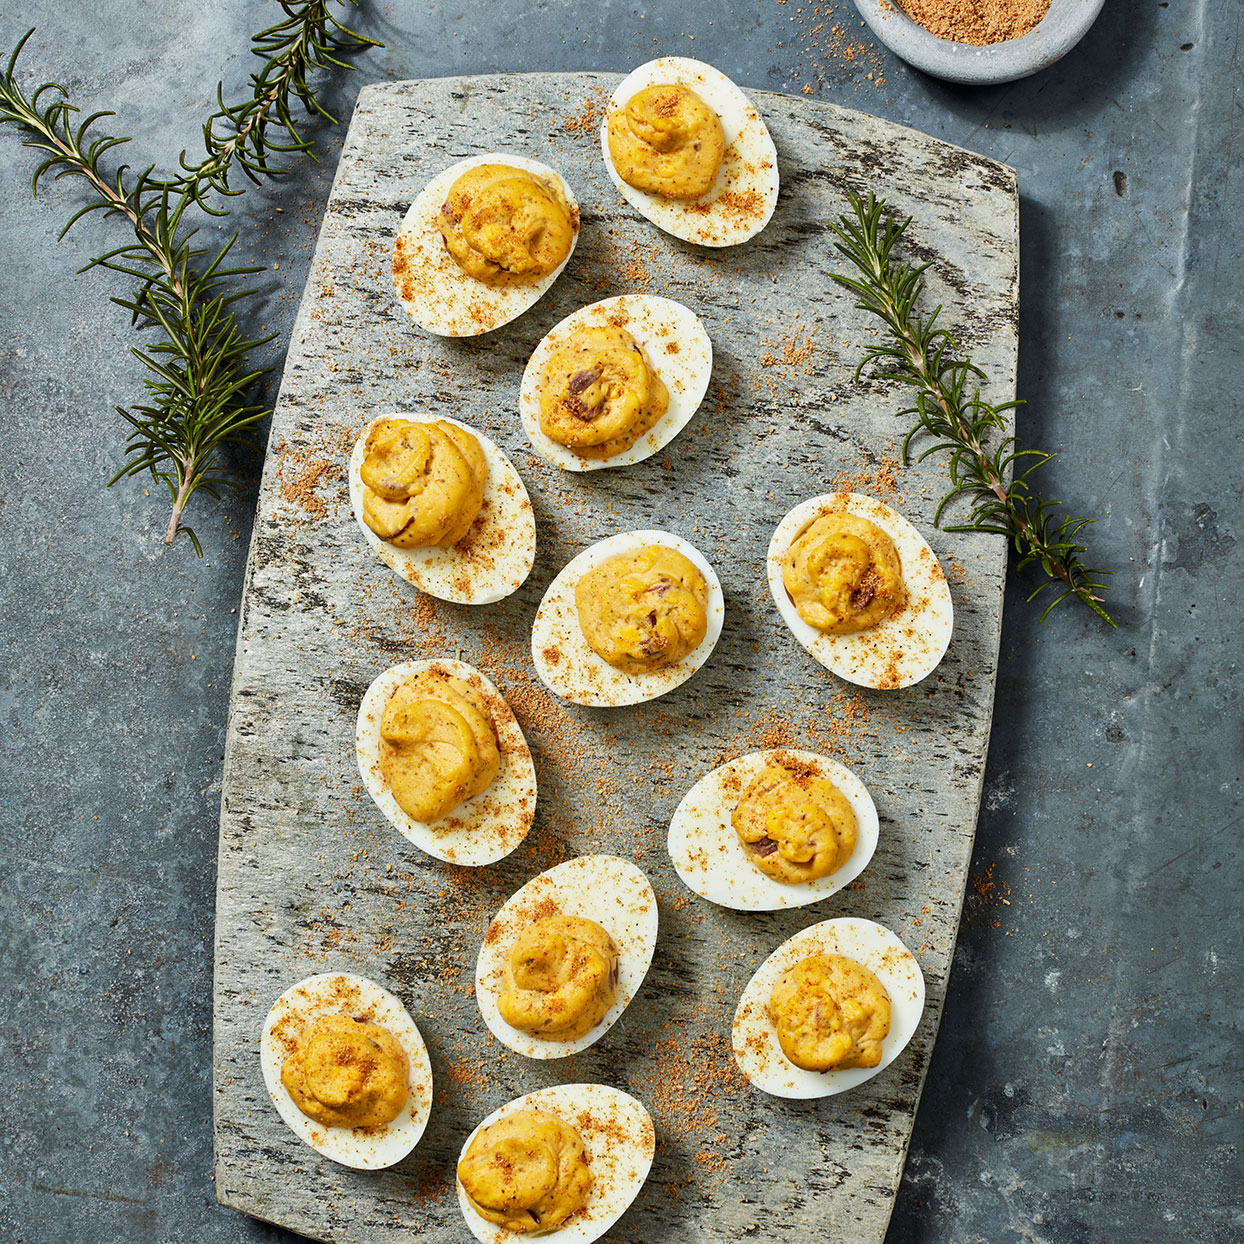 Rosemary Deviled Eggs Trusted Brands